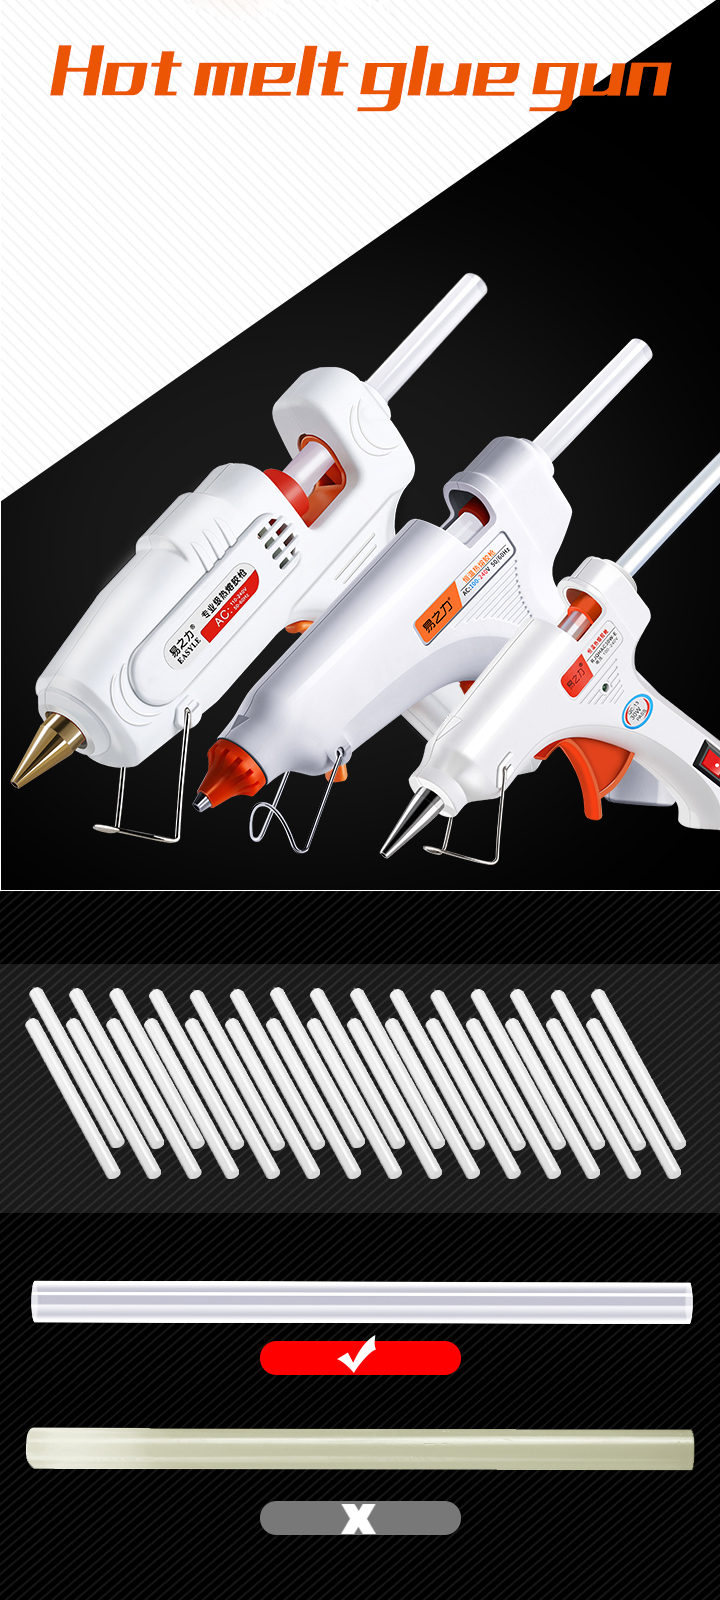 30W/80W/100W Professional High Temp Hot Melt Glue Gun Graft Repair Heat Gun Pneumatic DIY Tools Hot Glue Gun with Base